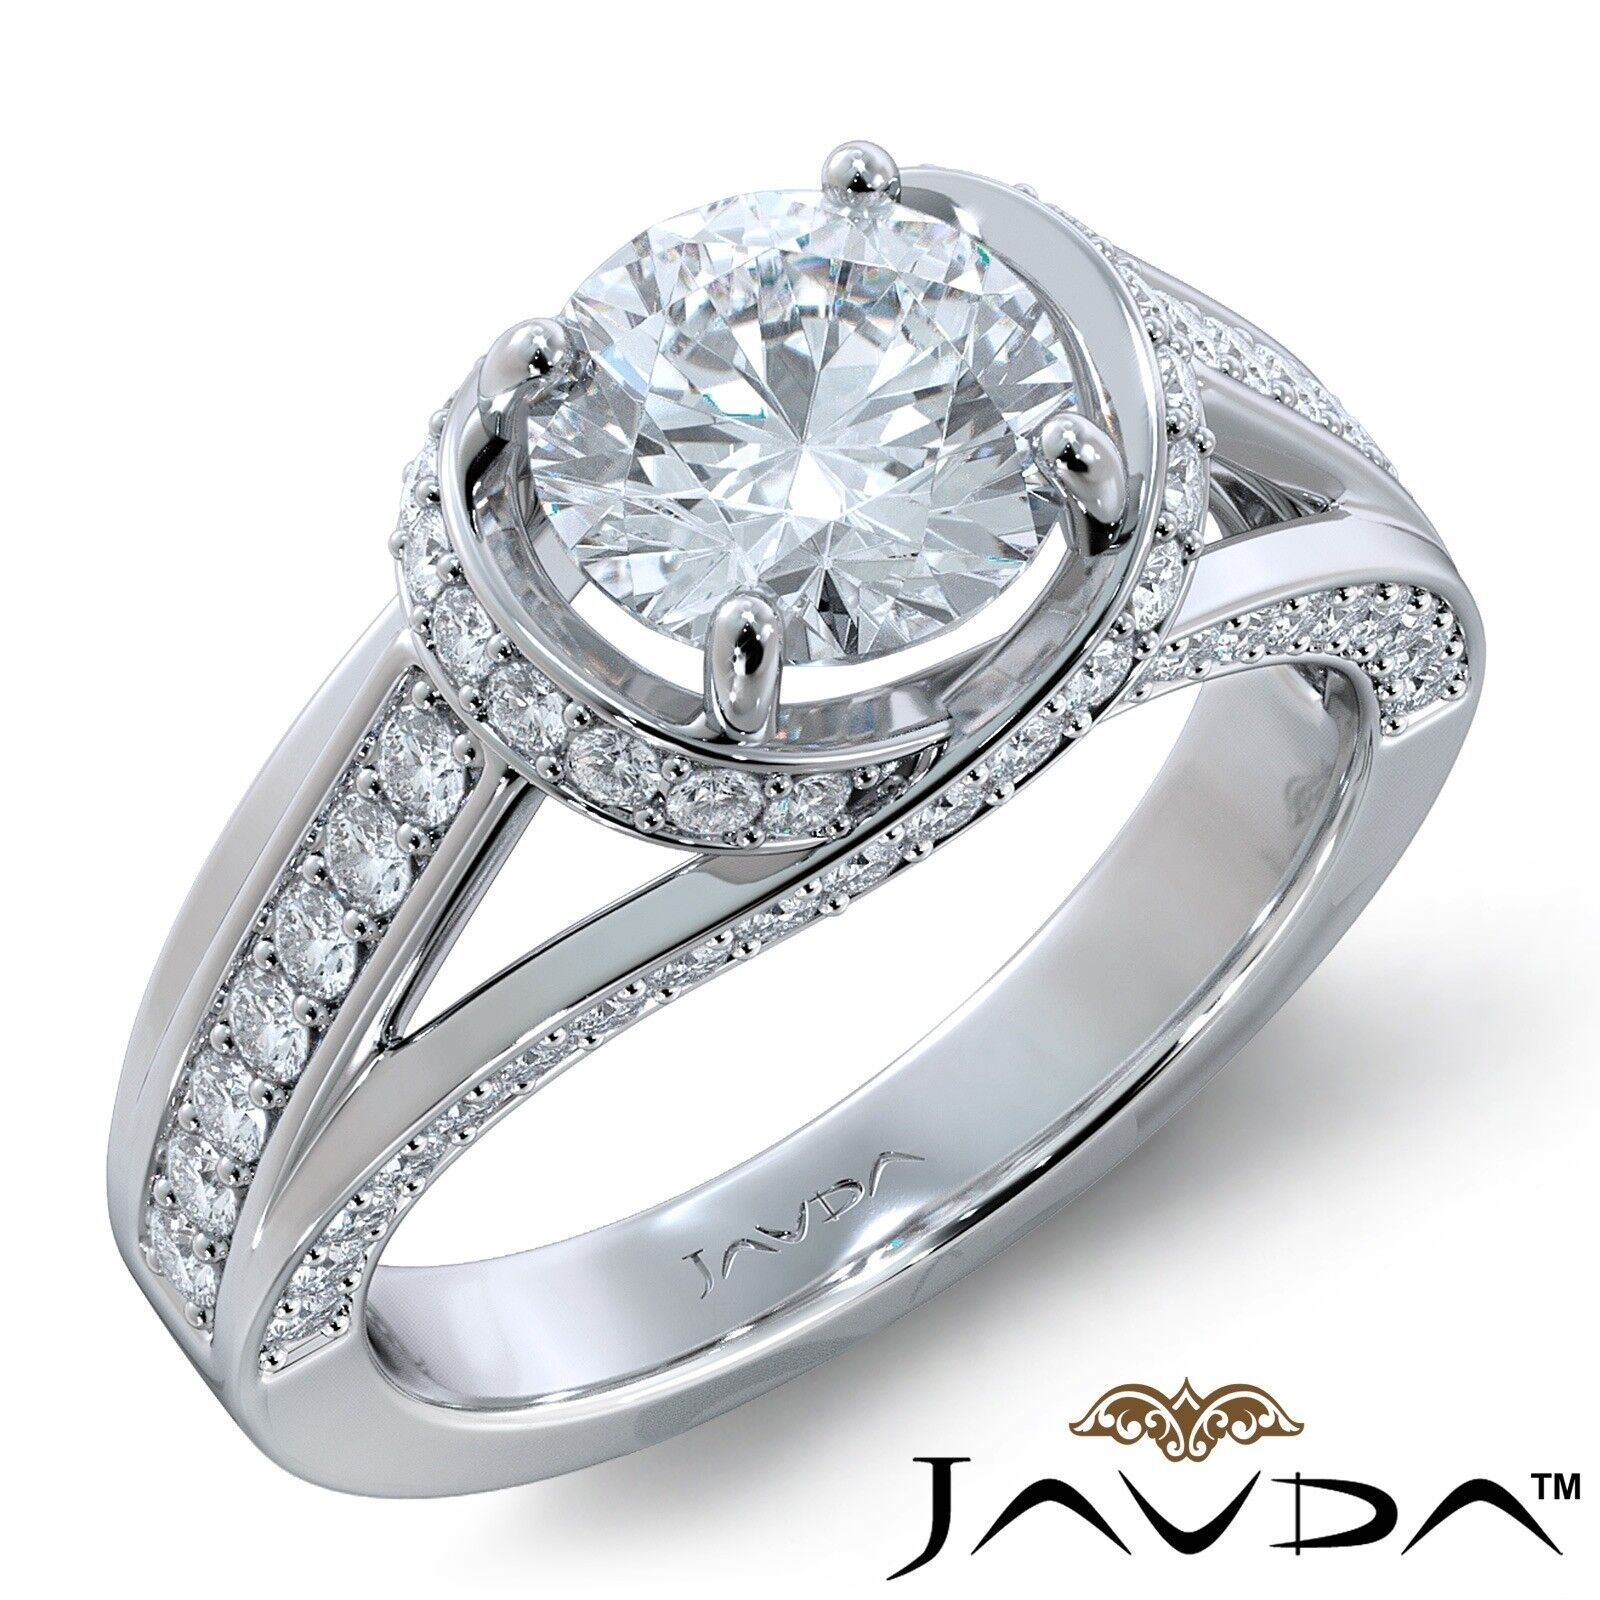 1.5ct Knot Style Classic Sidestone Round Diamond Engagement Ring GIA G-VVS1 Gold